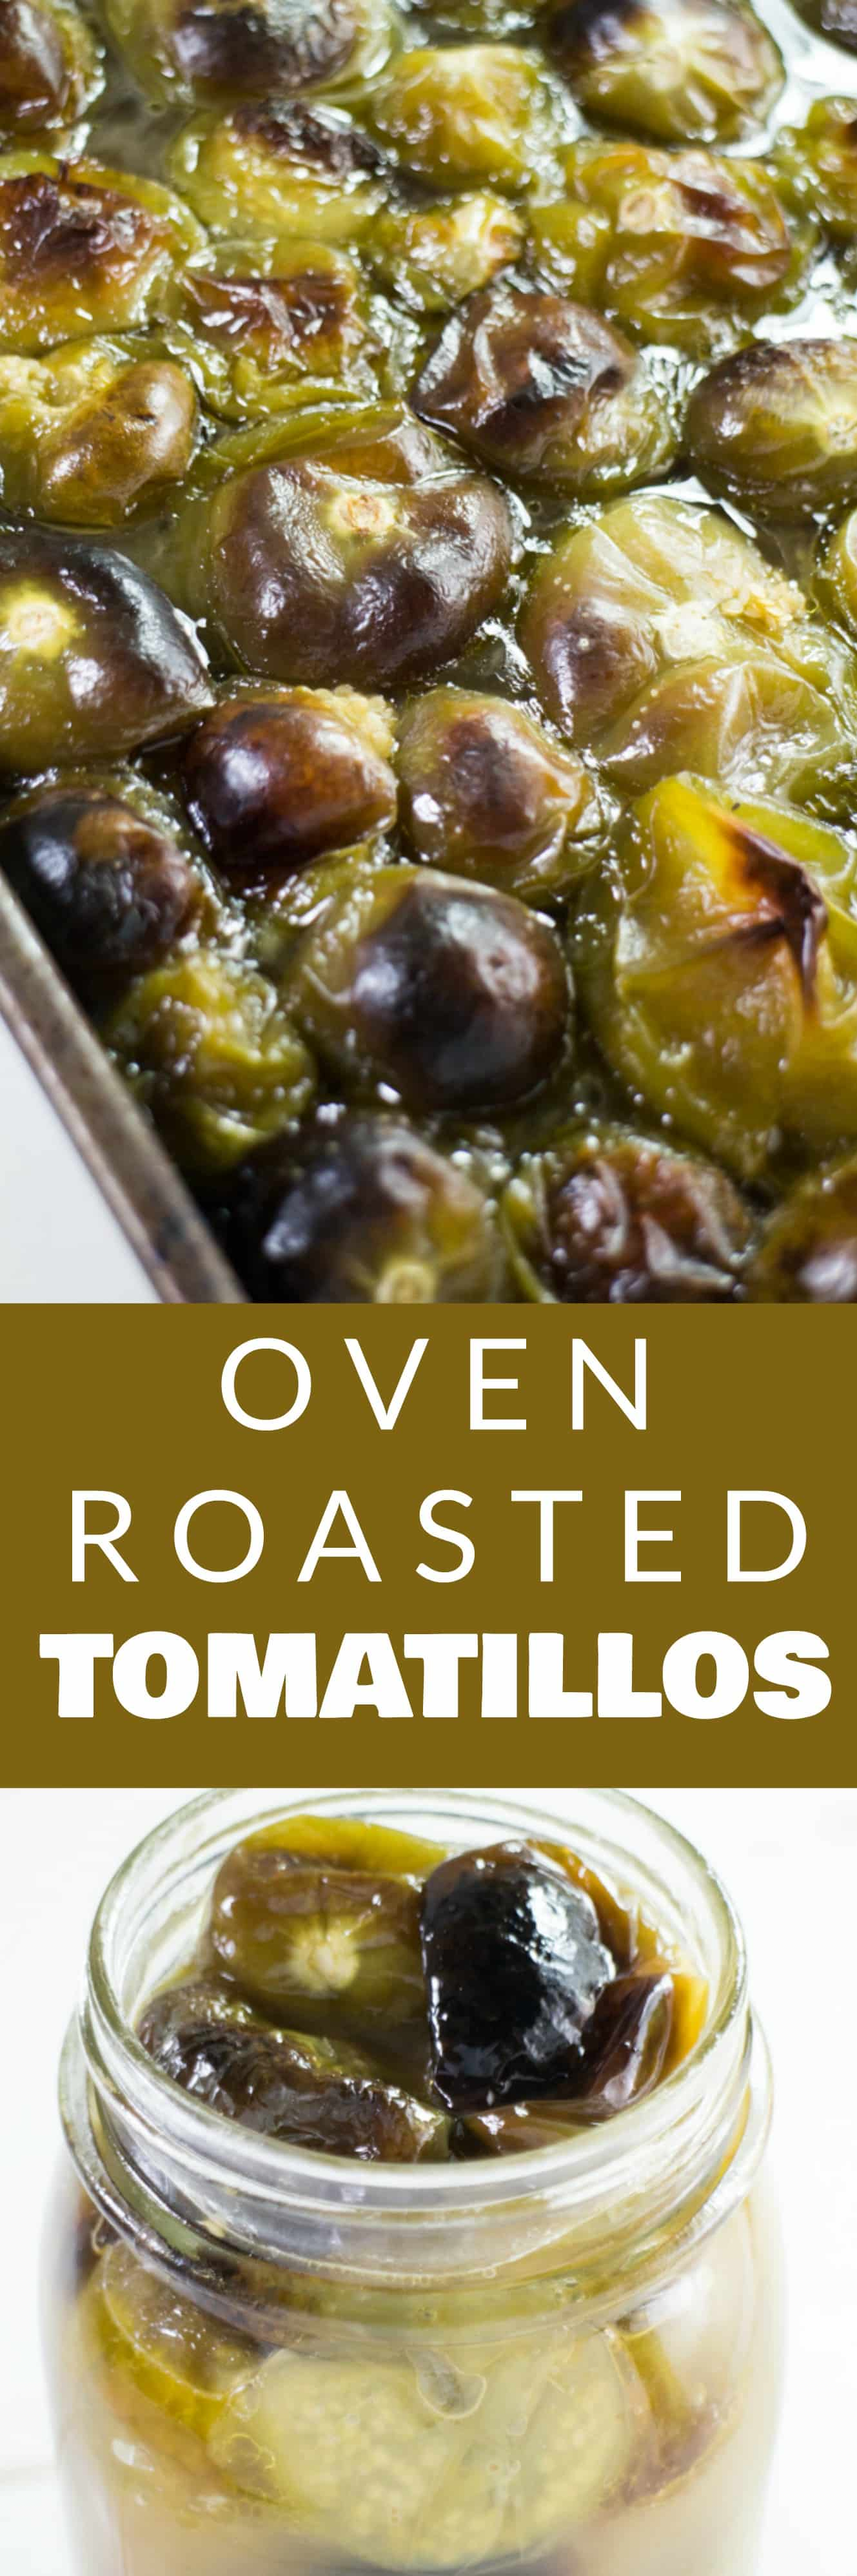 EASY, OVEN ROASTED Tomatillos Recipe! Shows you how to cook tomatillo! This tomatillo sauce is DELICIOUS and can be used as a soup stock, chicken tacos salsa, served over rice and so much more! This recipe is canning and freezing friendly, perfect for preserving a overabundance of garden tomatillo plants!